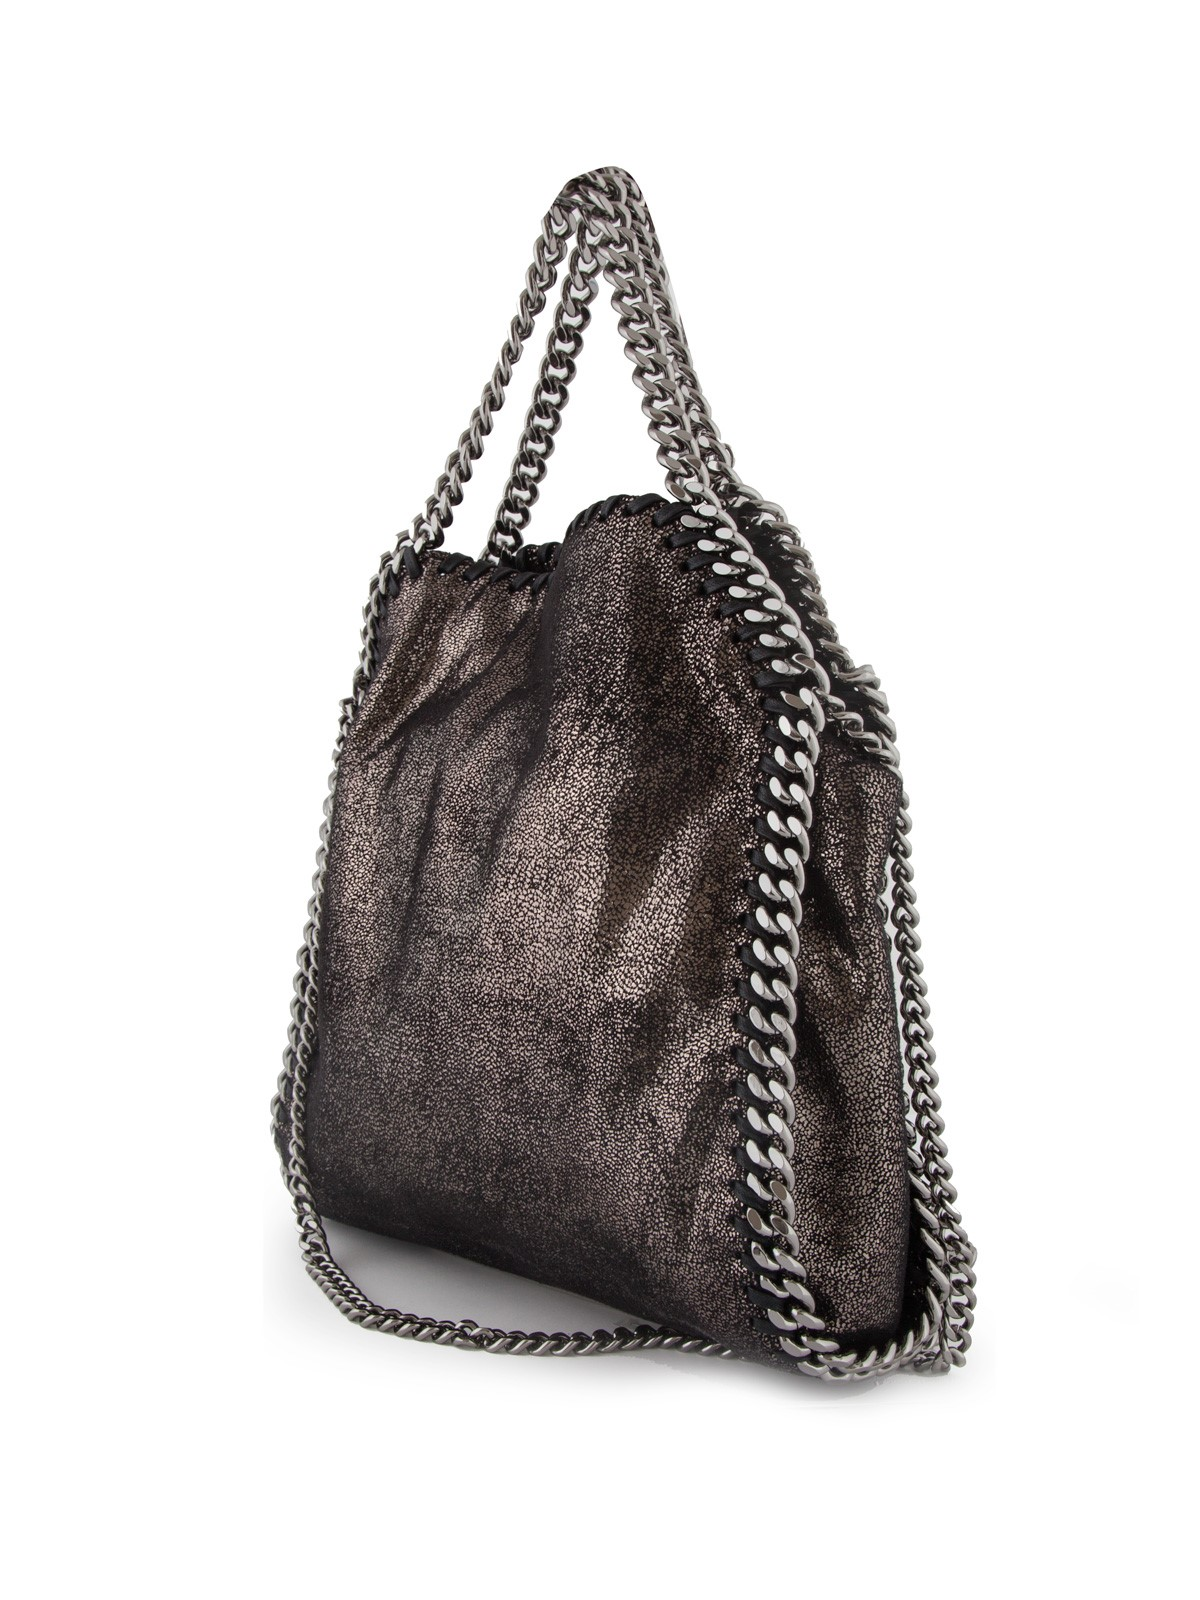 stella mccartney SMALL FALABELLA TOTE BAG available on montiboutique ... e4ee7adf562dd